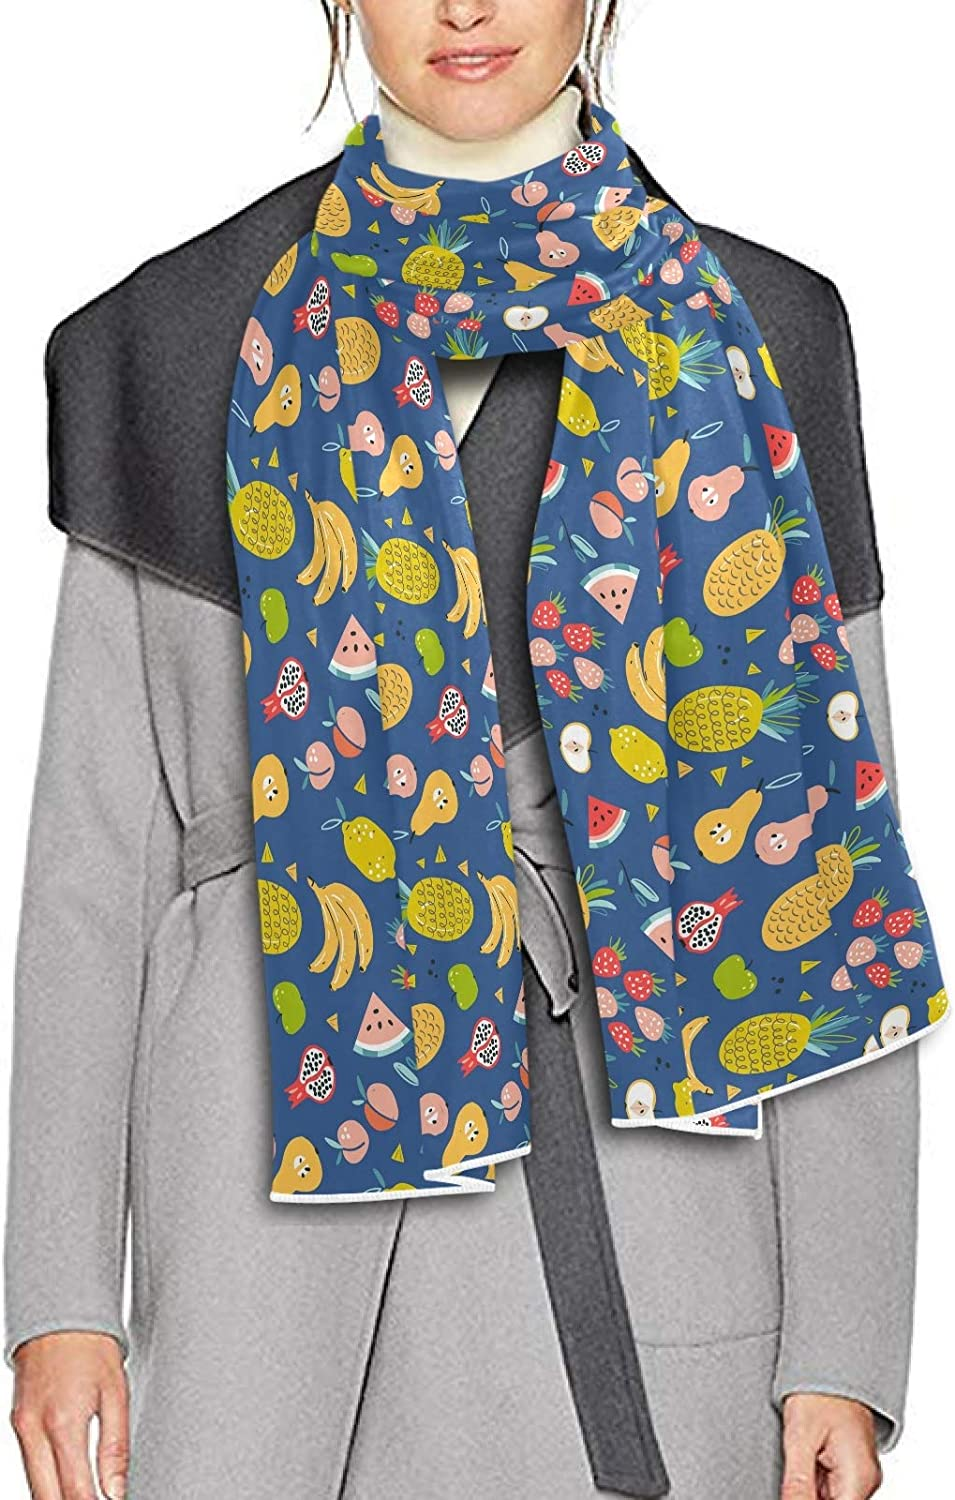 Scarf for Women and Men Tropical Fruit Pineapple Blanket Shawl Scarf wraps Soft thick Winter Oversized Scarves Lightweight